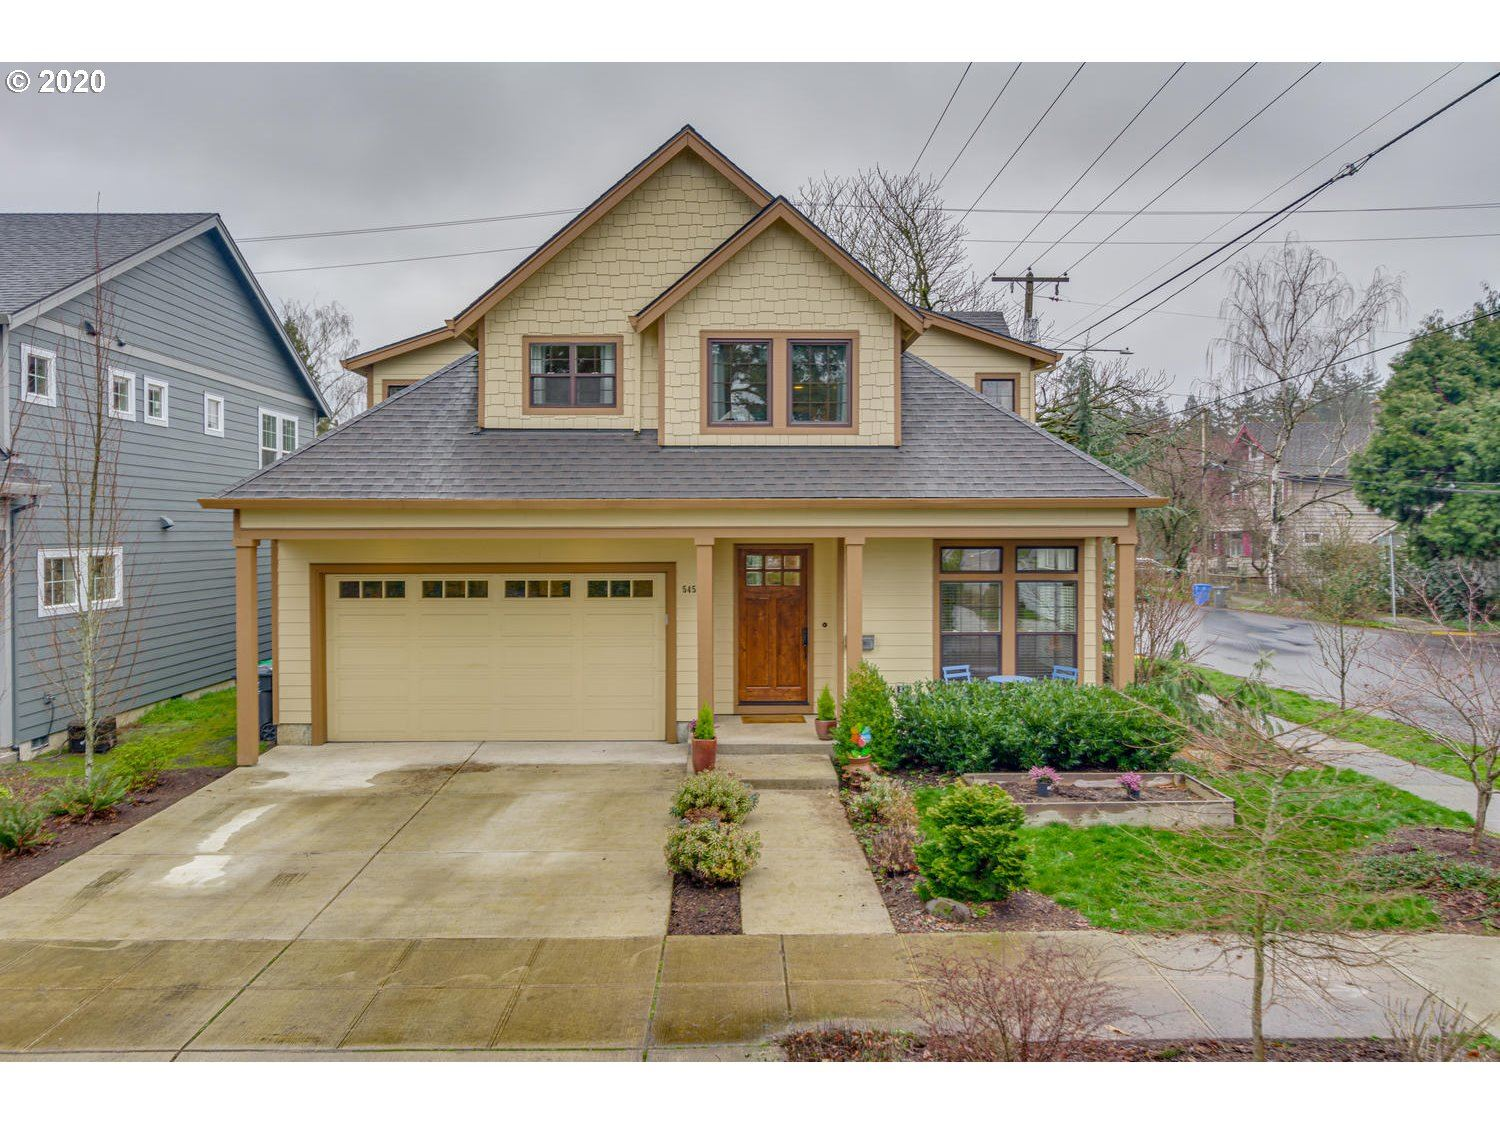 5454 SE 69TH AVE, Portland, OR 97206 - MLS#: 20128161